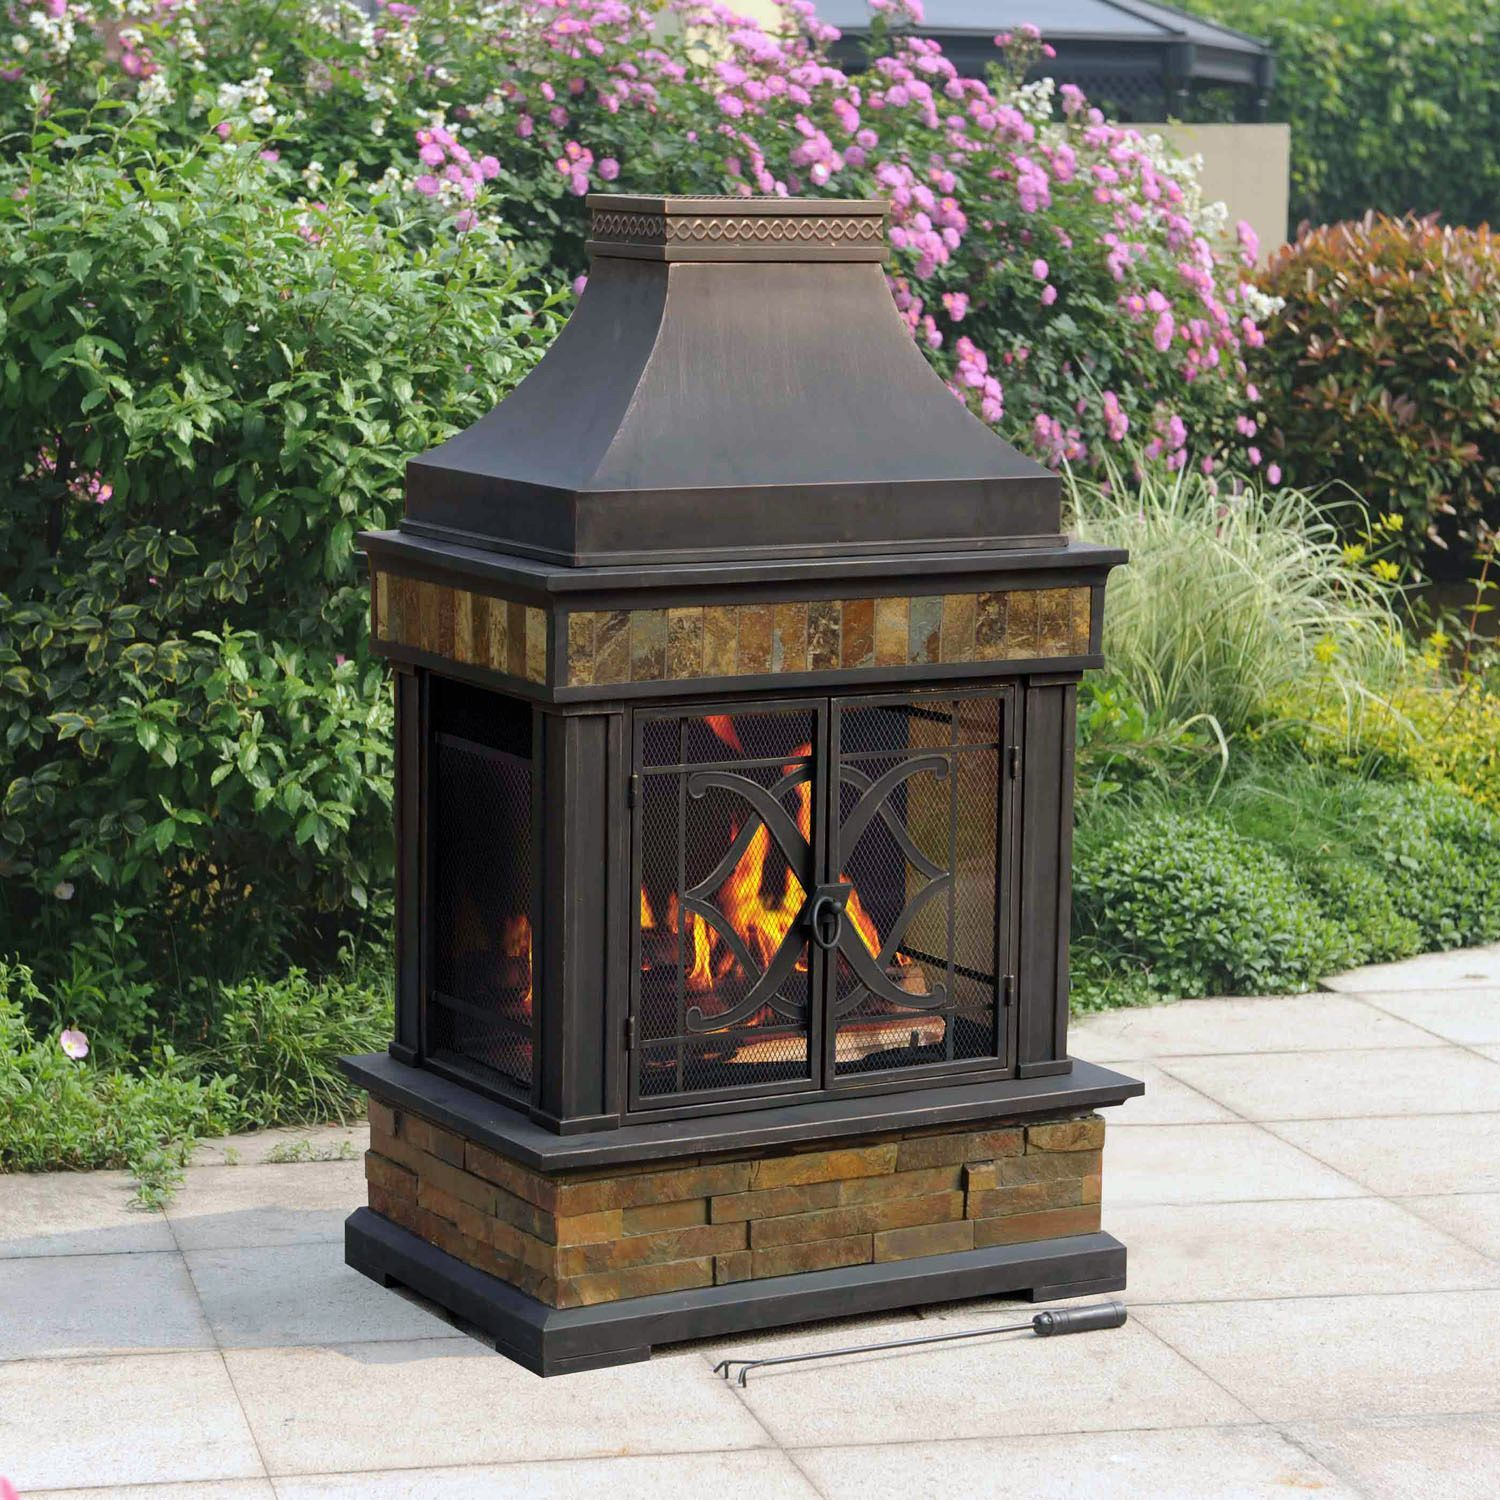 title | Patio Propane Fireplace Outdoor Decor